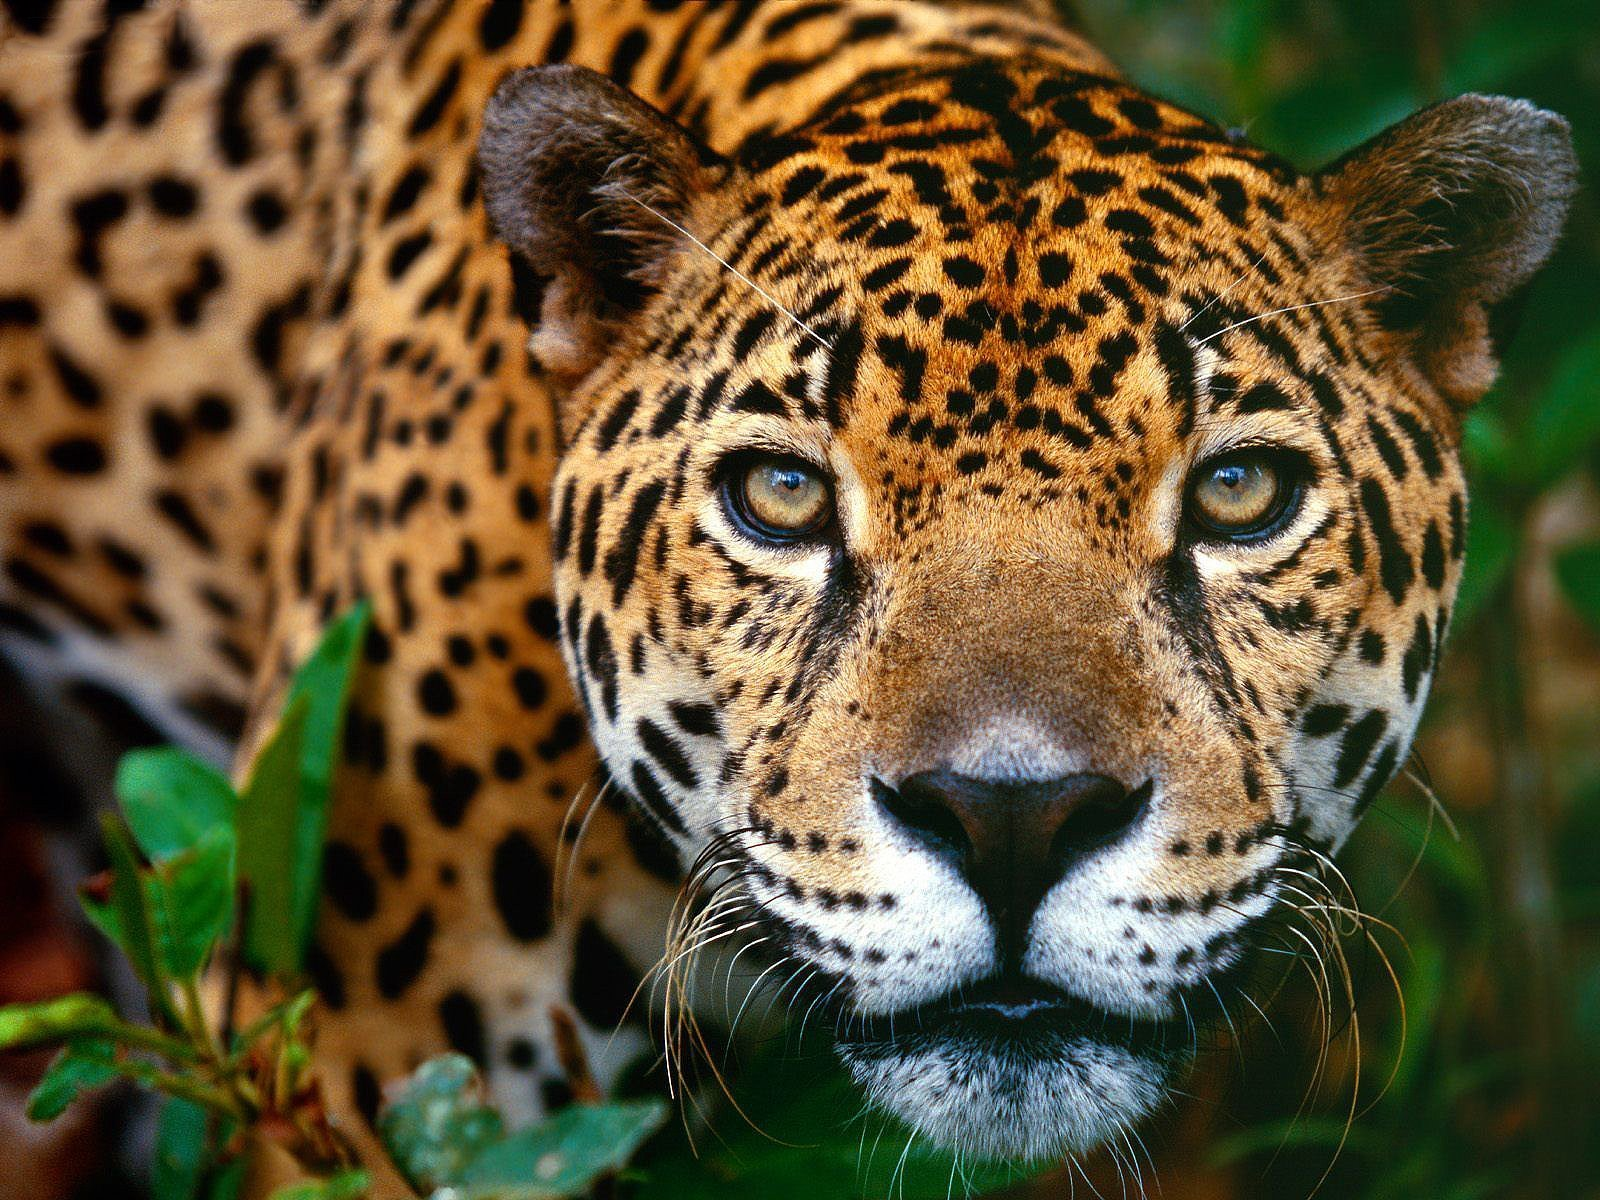 an introduction to the wild cat species jaguars The big cat species are classified into the panthera genus and neofelis genus jaguar (panthera onca) leopard (panthera pardus) the first four big cats in the panthera genus are the only wild cats that have the ability to roar.